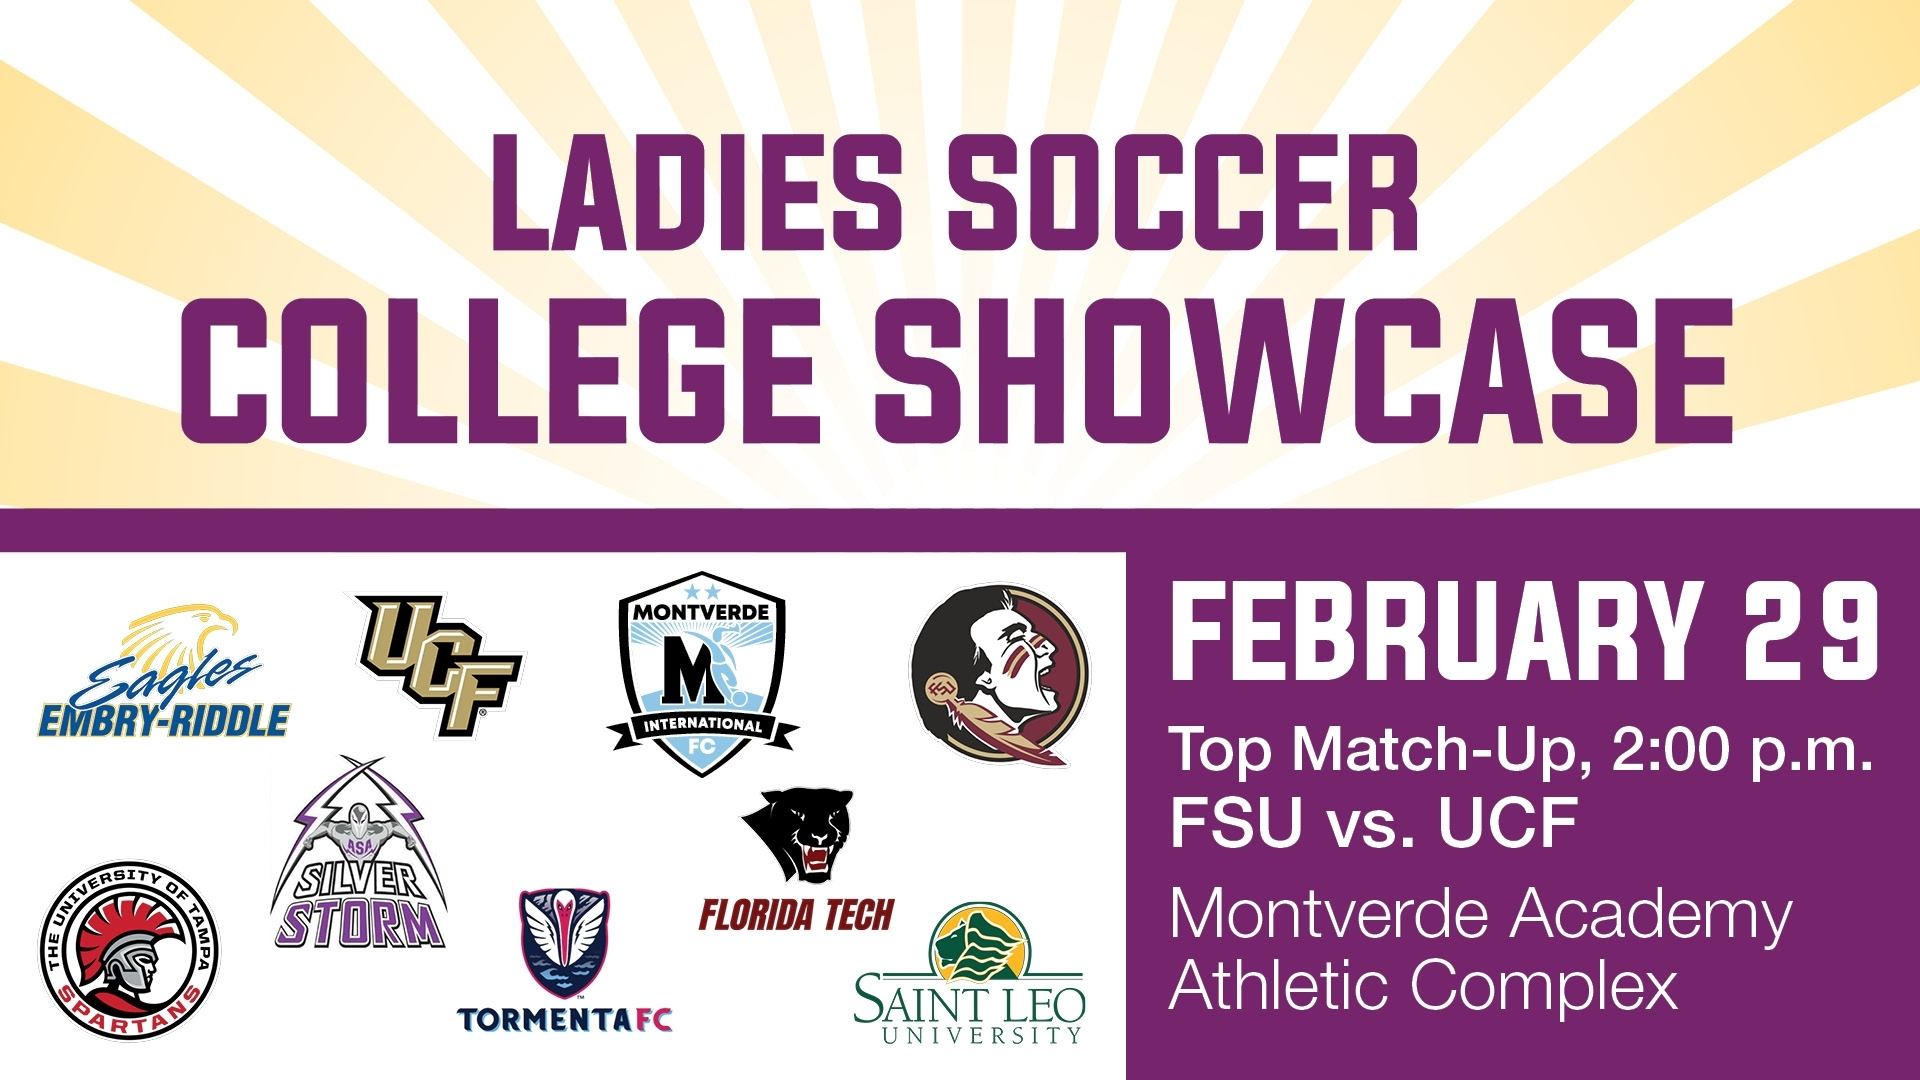 The 2020 Ladies Soccer College Showcase - Montverde Academy